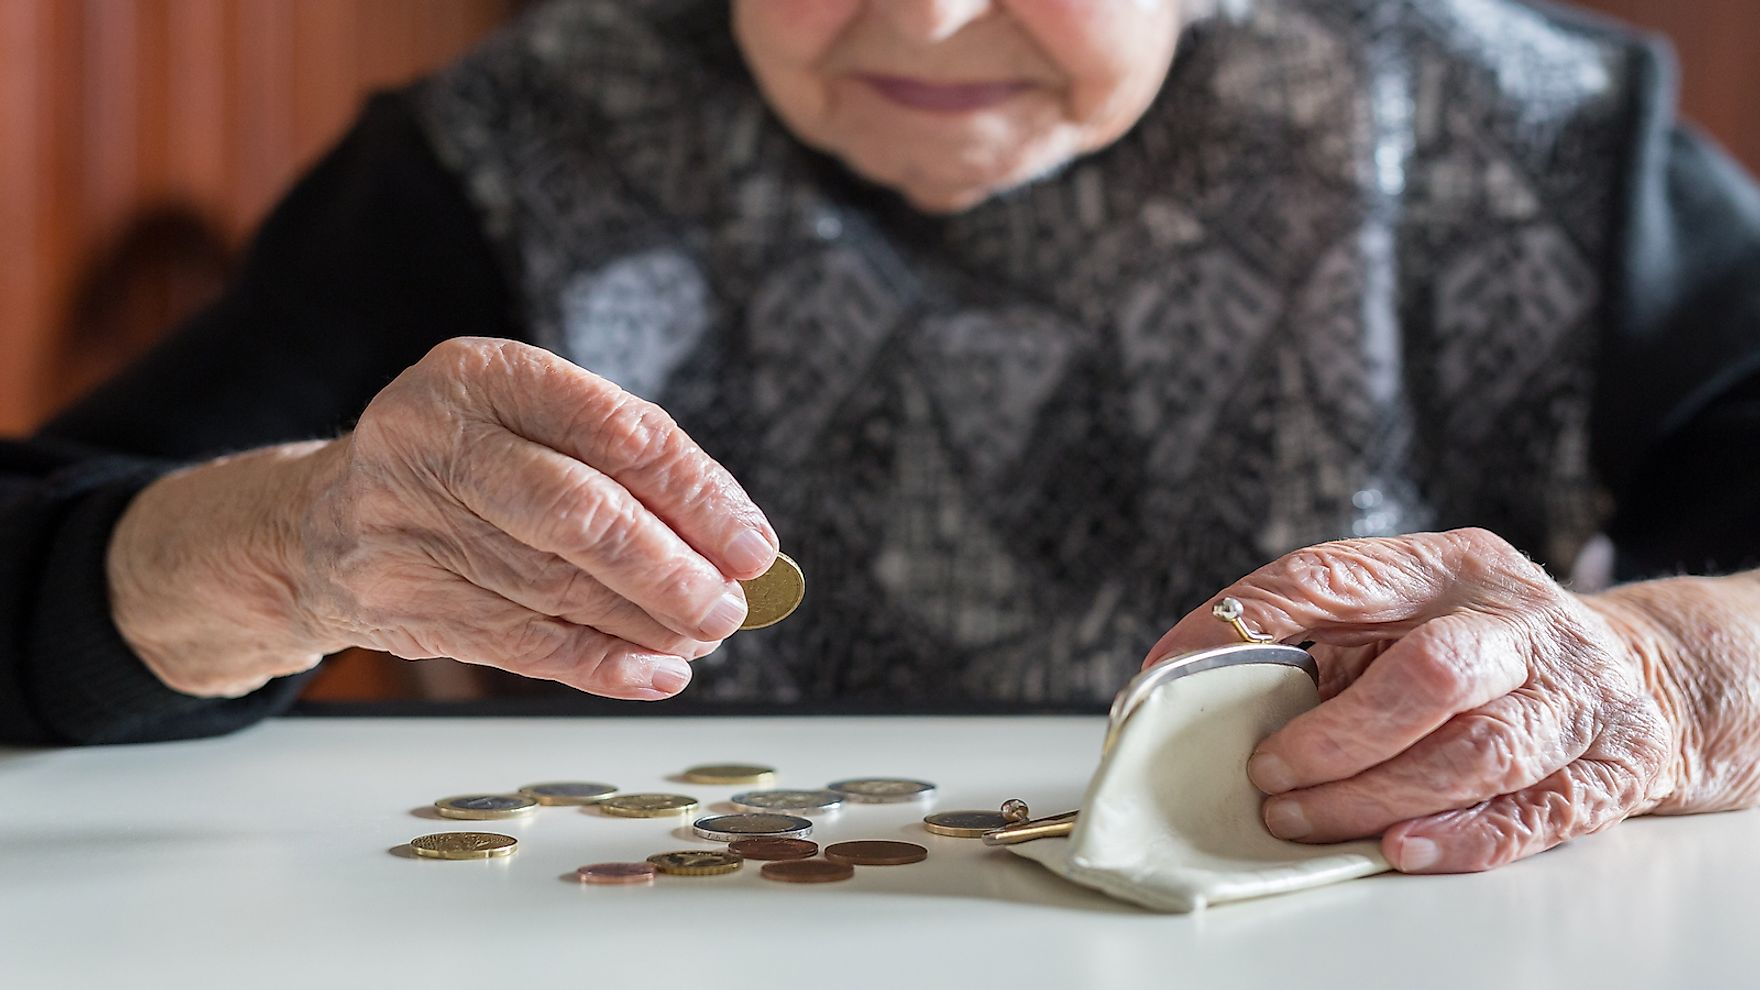 Many countries lack an efficient social protection system to cushion the elderly from poverty.